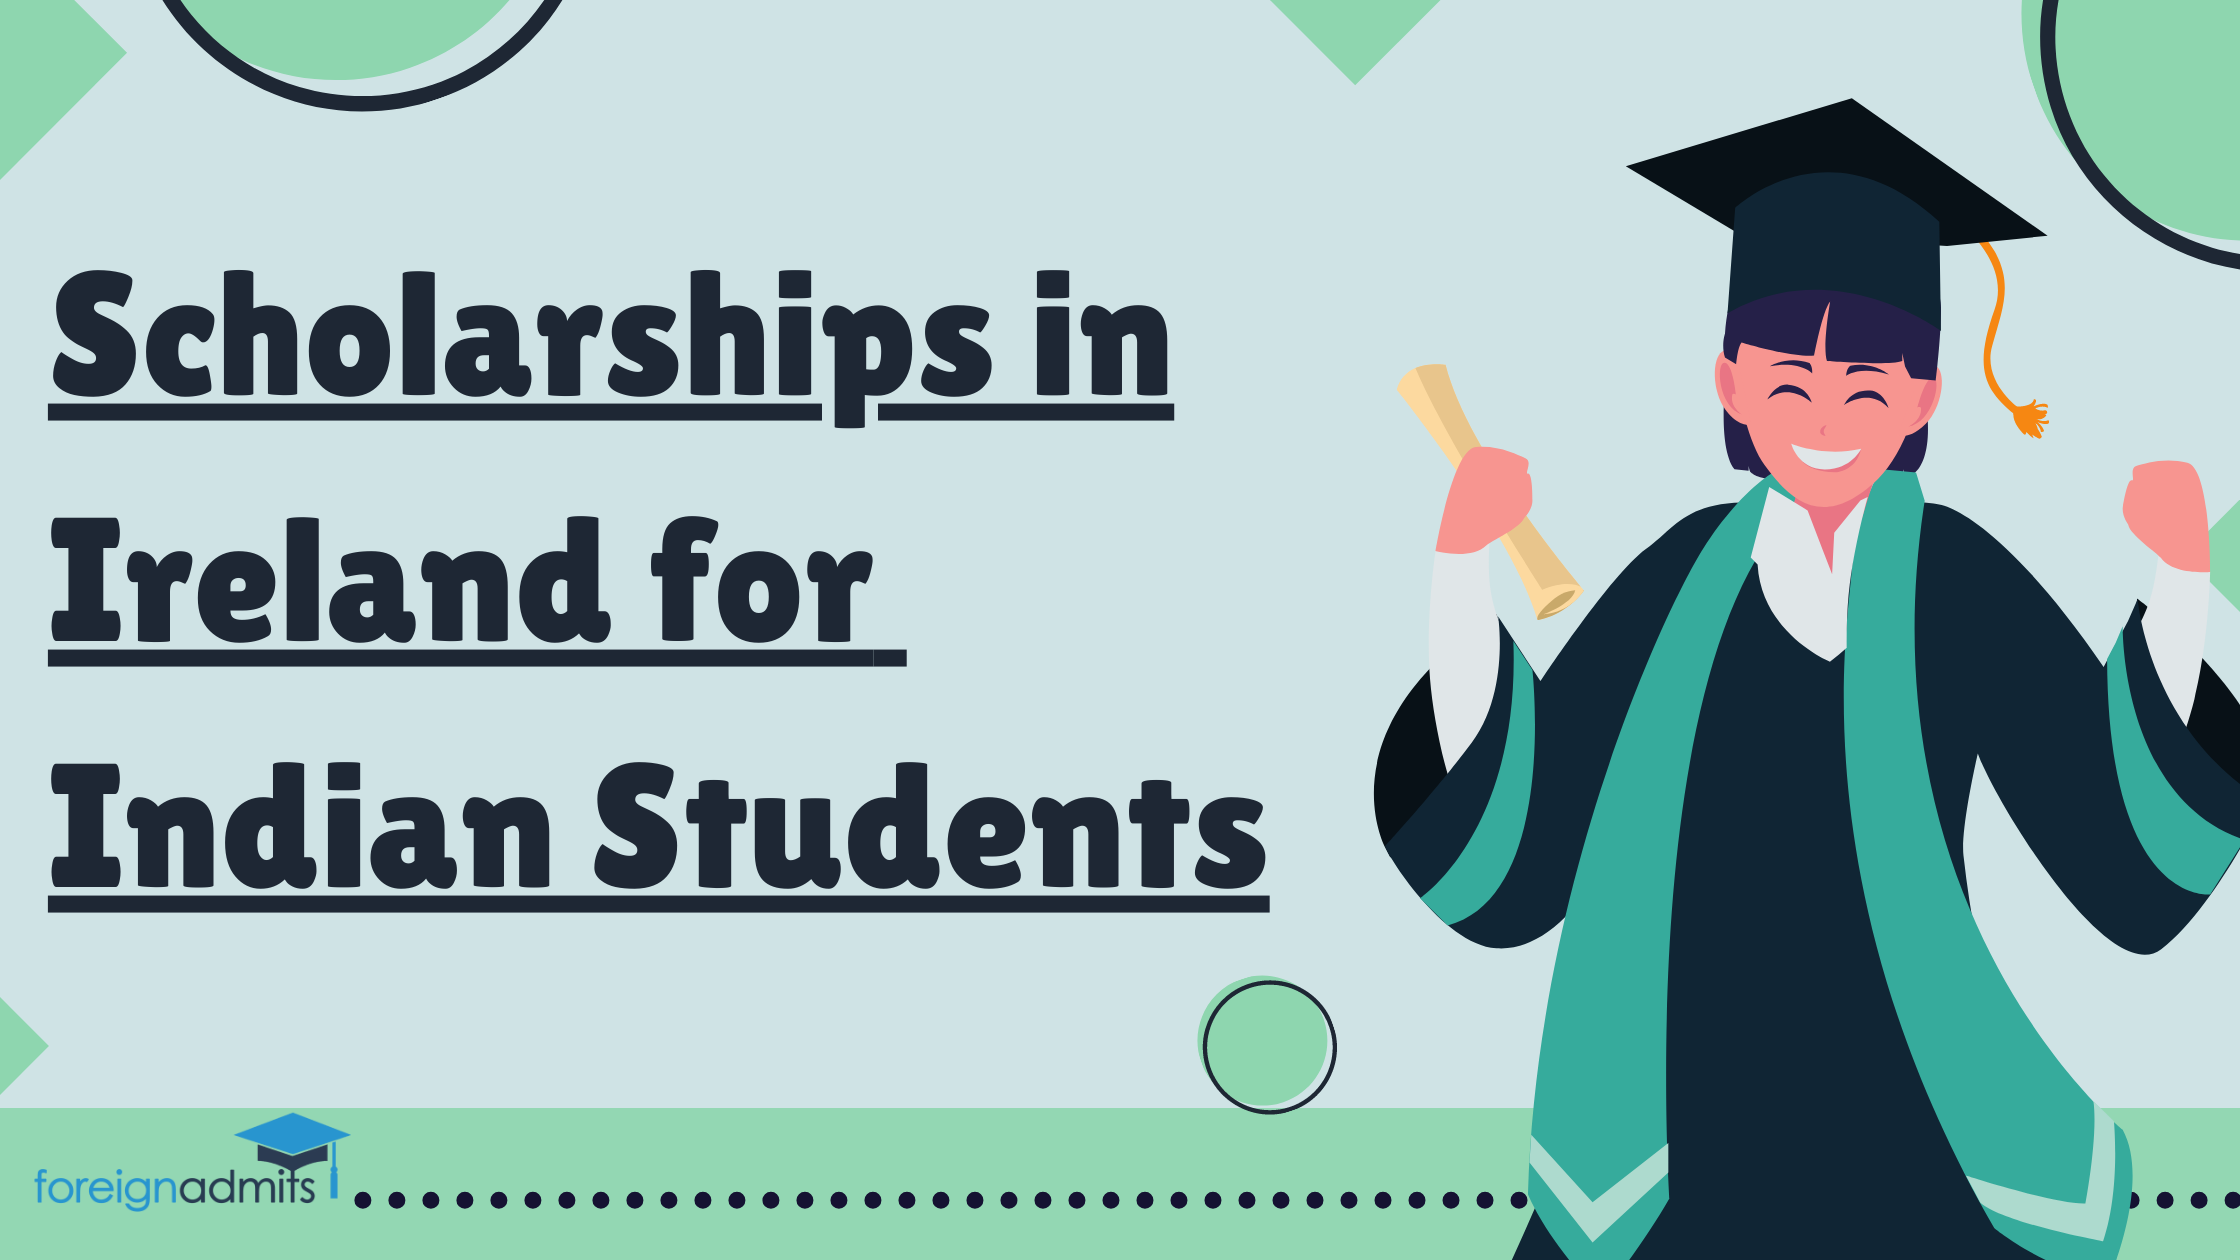 Scholarships in Ireland for Indian Students